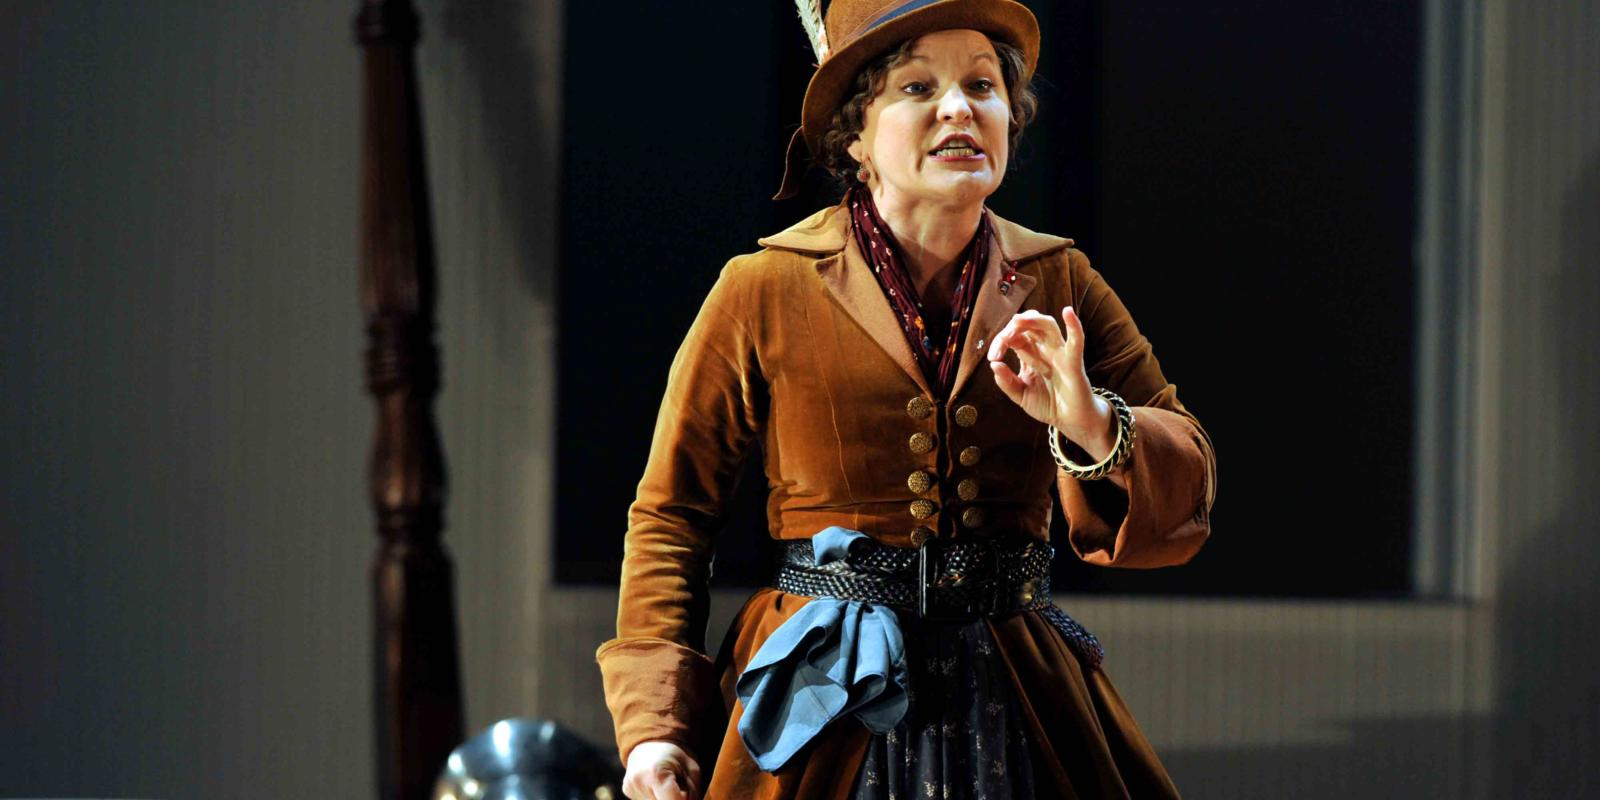 An image of Lucy Schaufer in Fiona Shaw's 2014 production The Marriage of Figaro